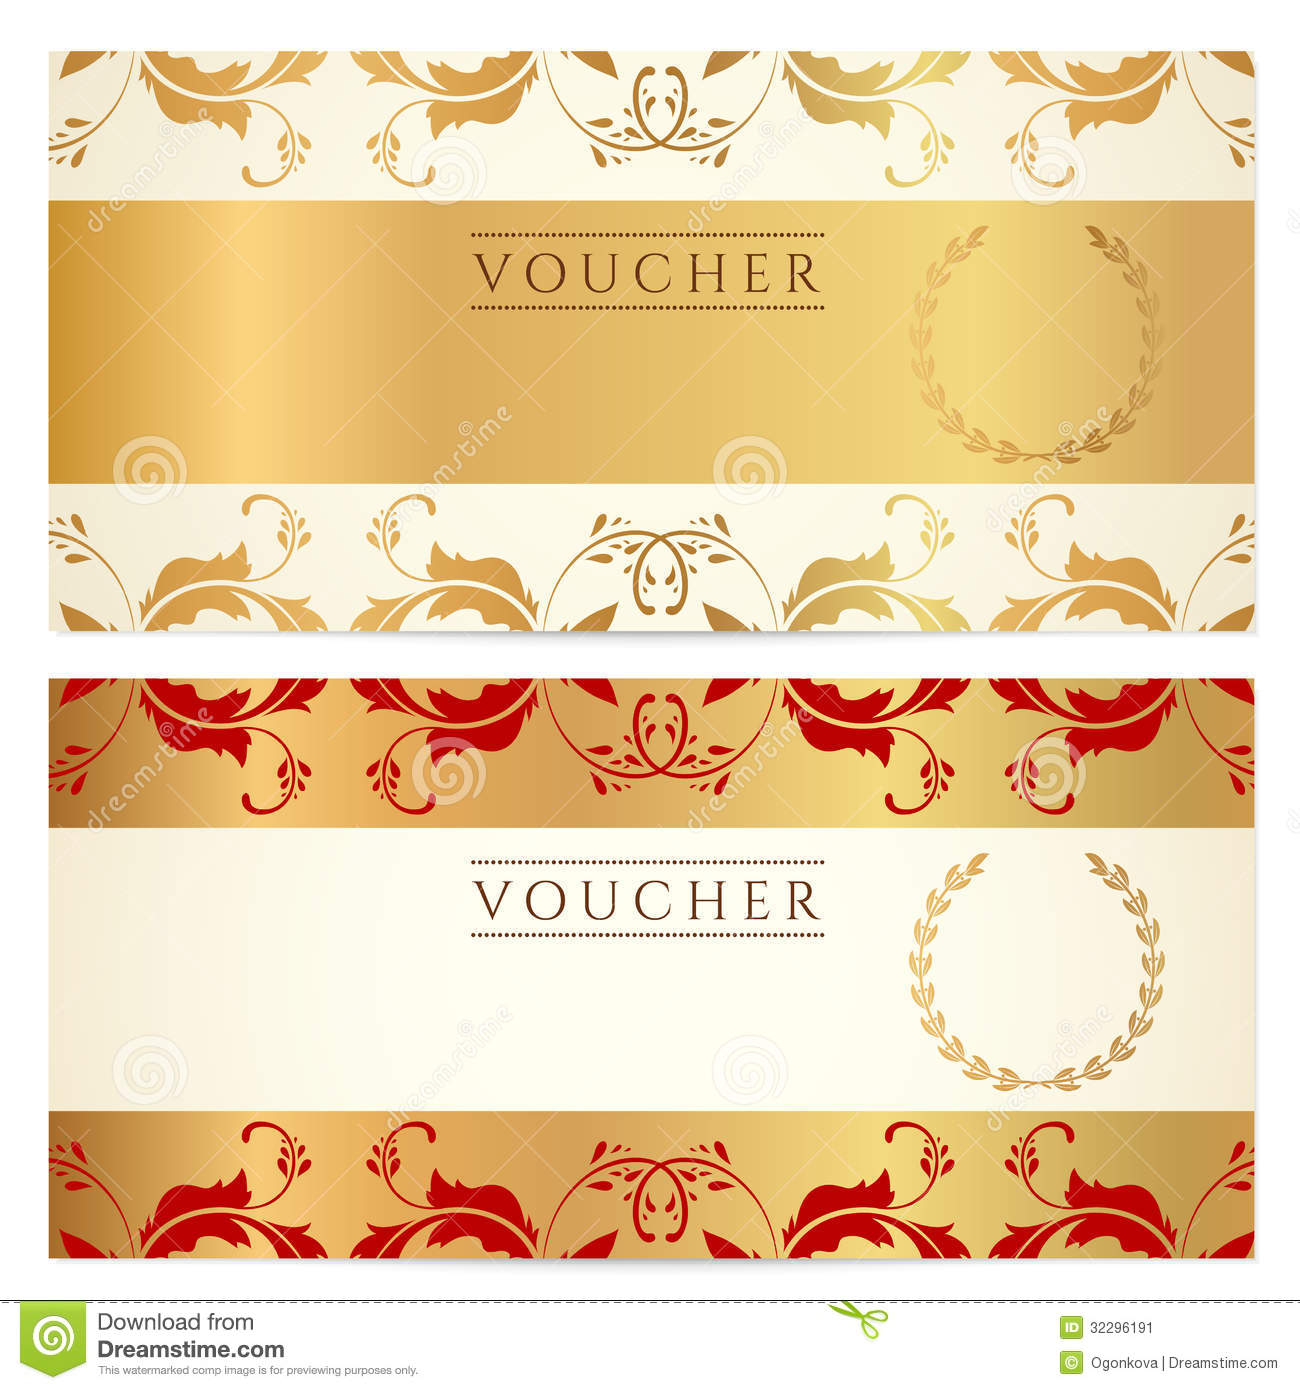 Gift Certificate (Voucher, Coupon) Template  Free Voucher Design Template